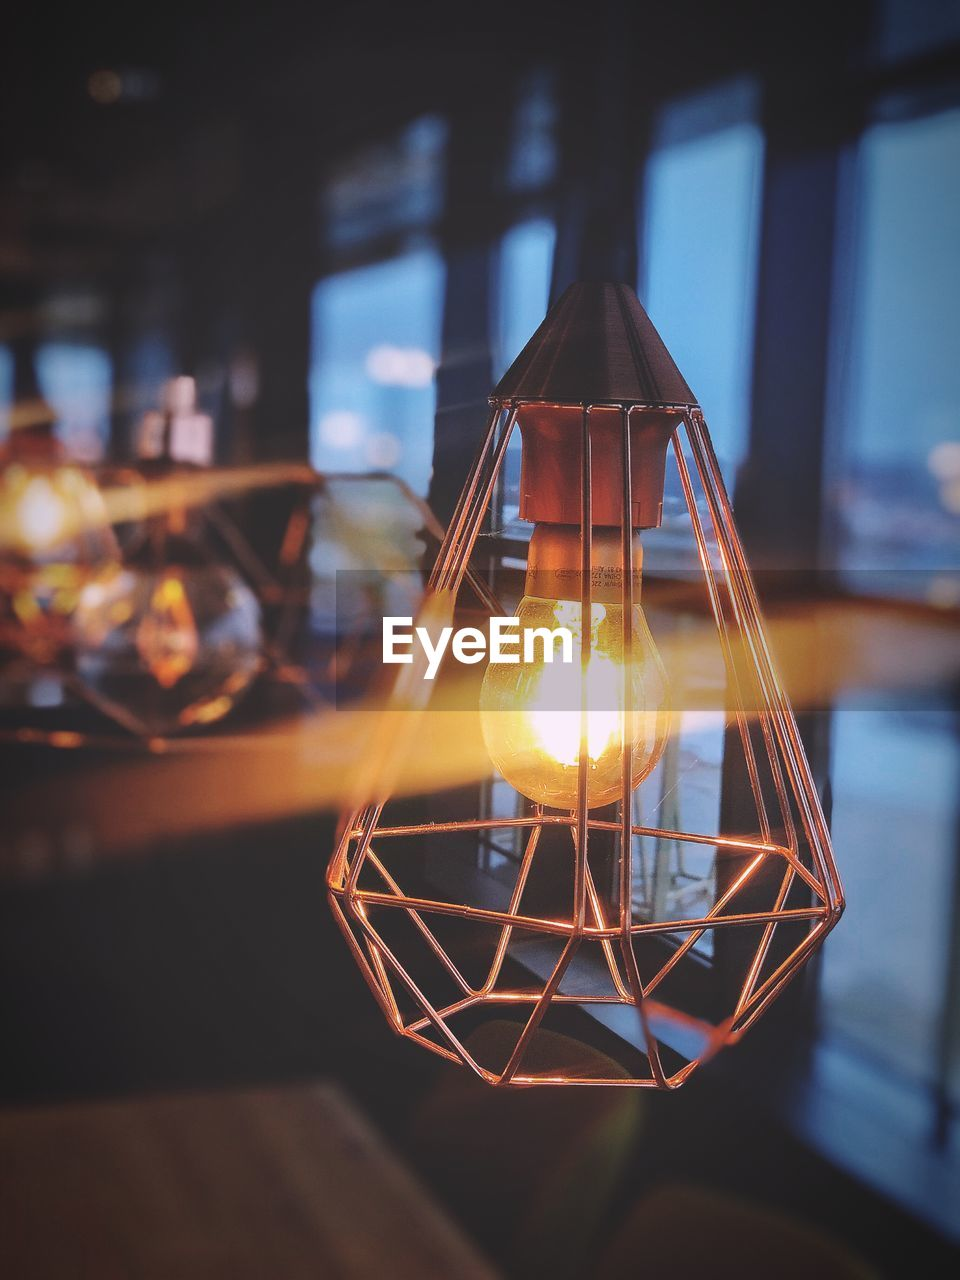 illuminated, focus on foreground, lighting equipment, glowing, indoors, close-up, electricity, no people, electric light, light bulb, light - natural phenomenon, light, glass - material, creativity, transparent, decoration, hanging, technology, design, electric lamp